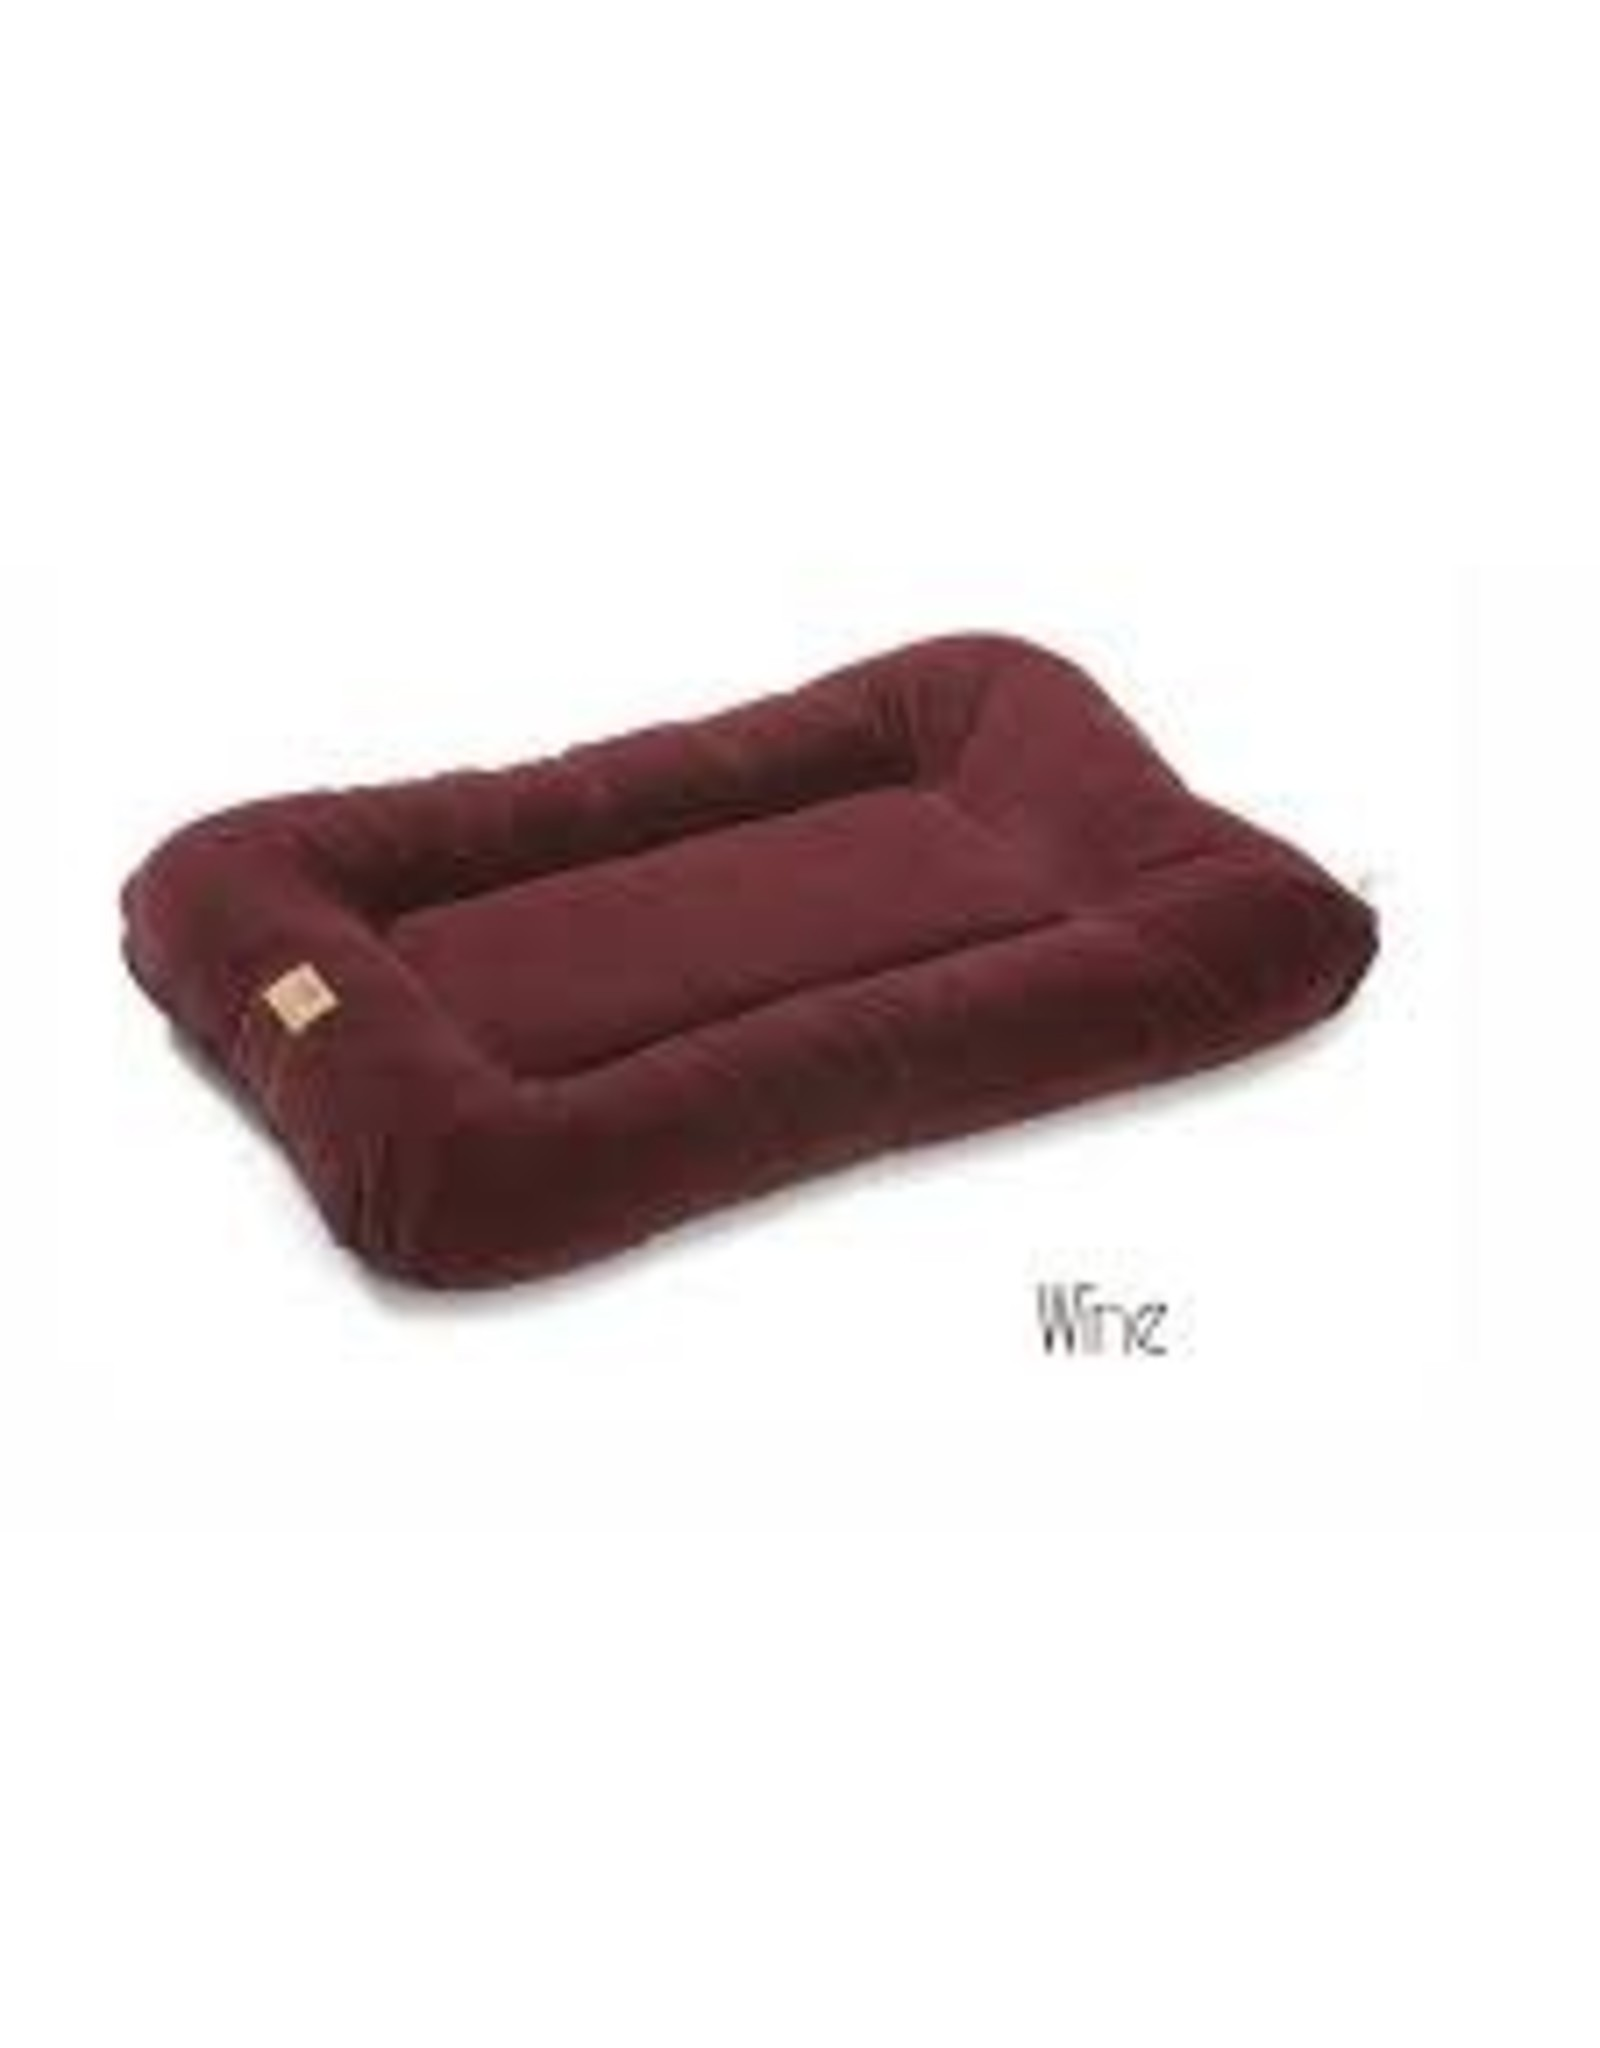 WEST PAW WEST PAW HEYDAY BED WINE L 40x27